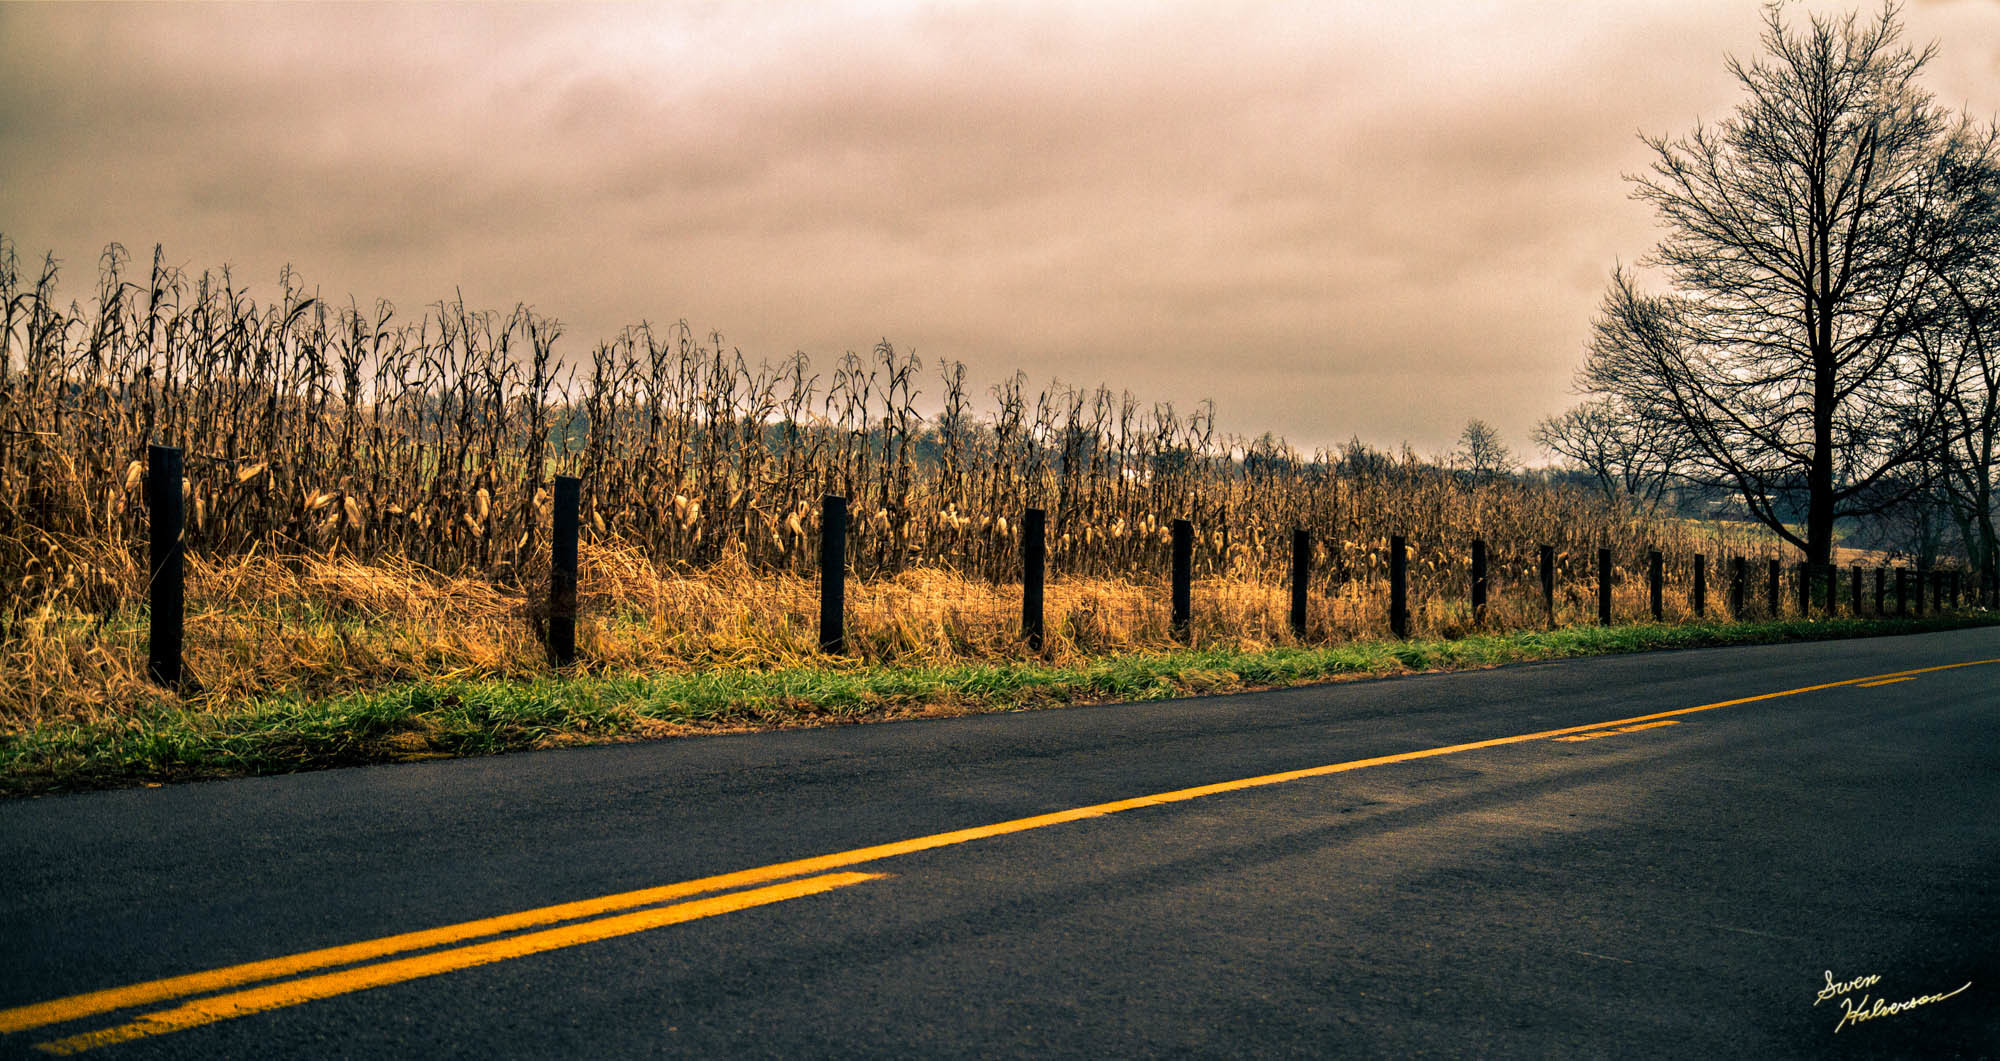 Theme: Road | Title: The Road Less Traveled